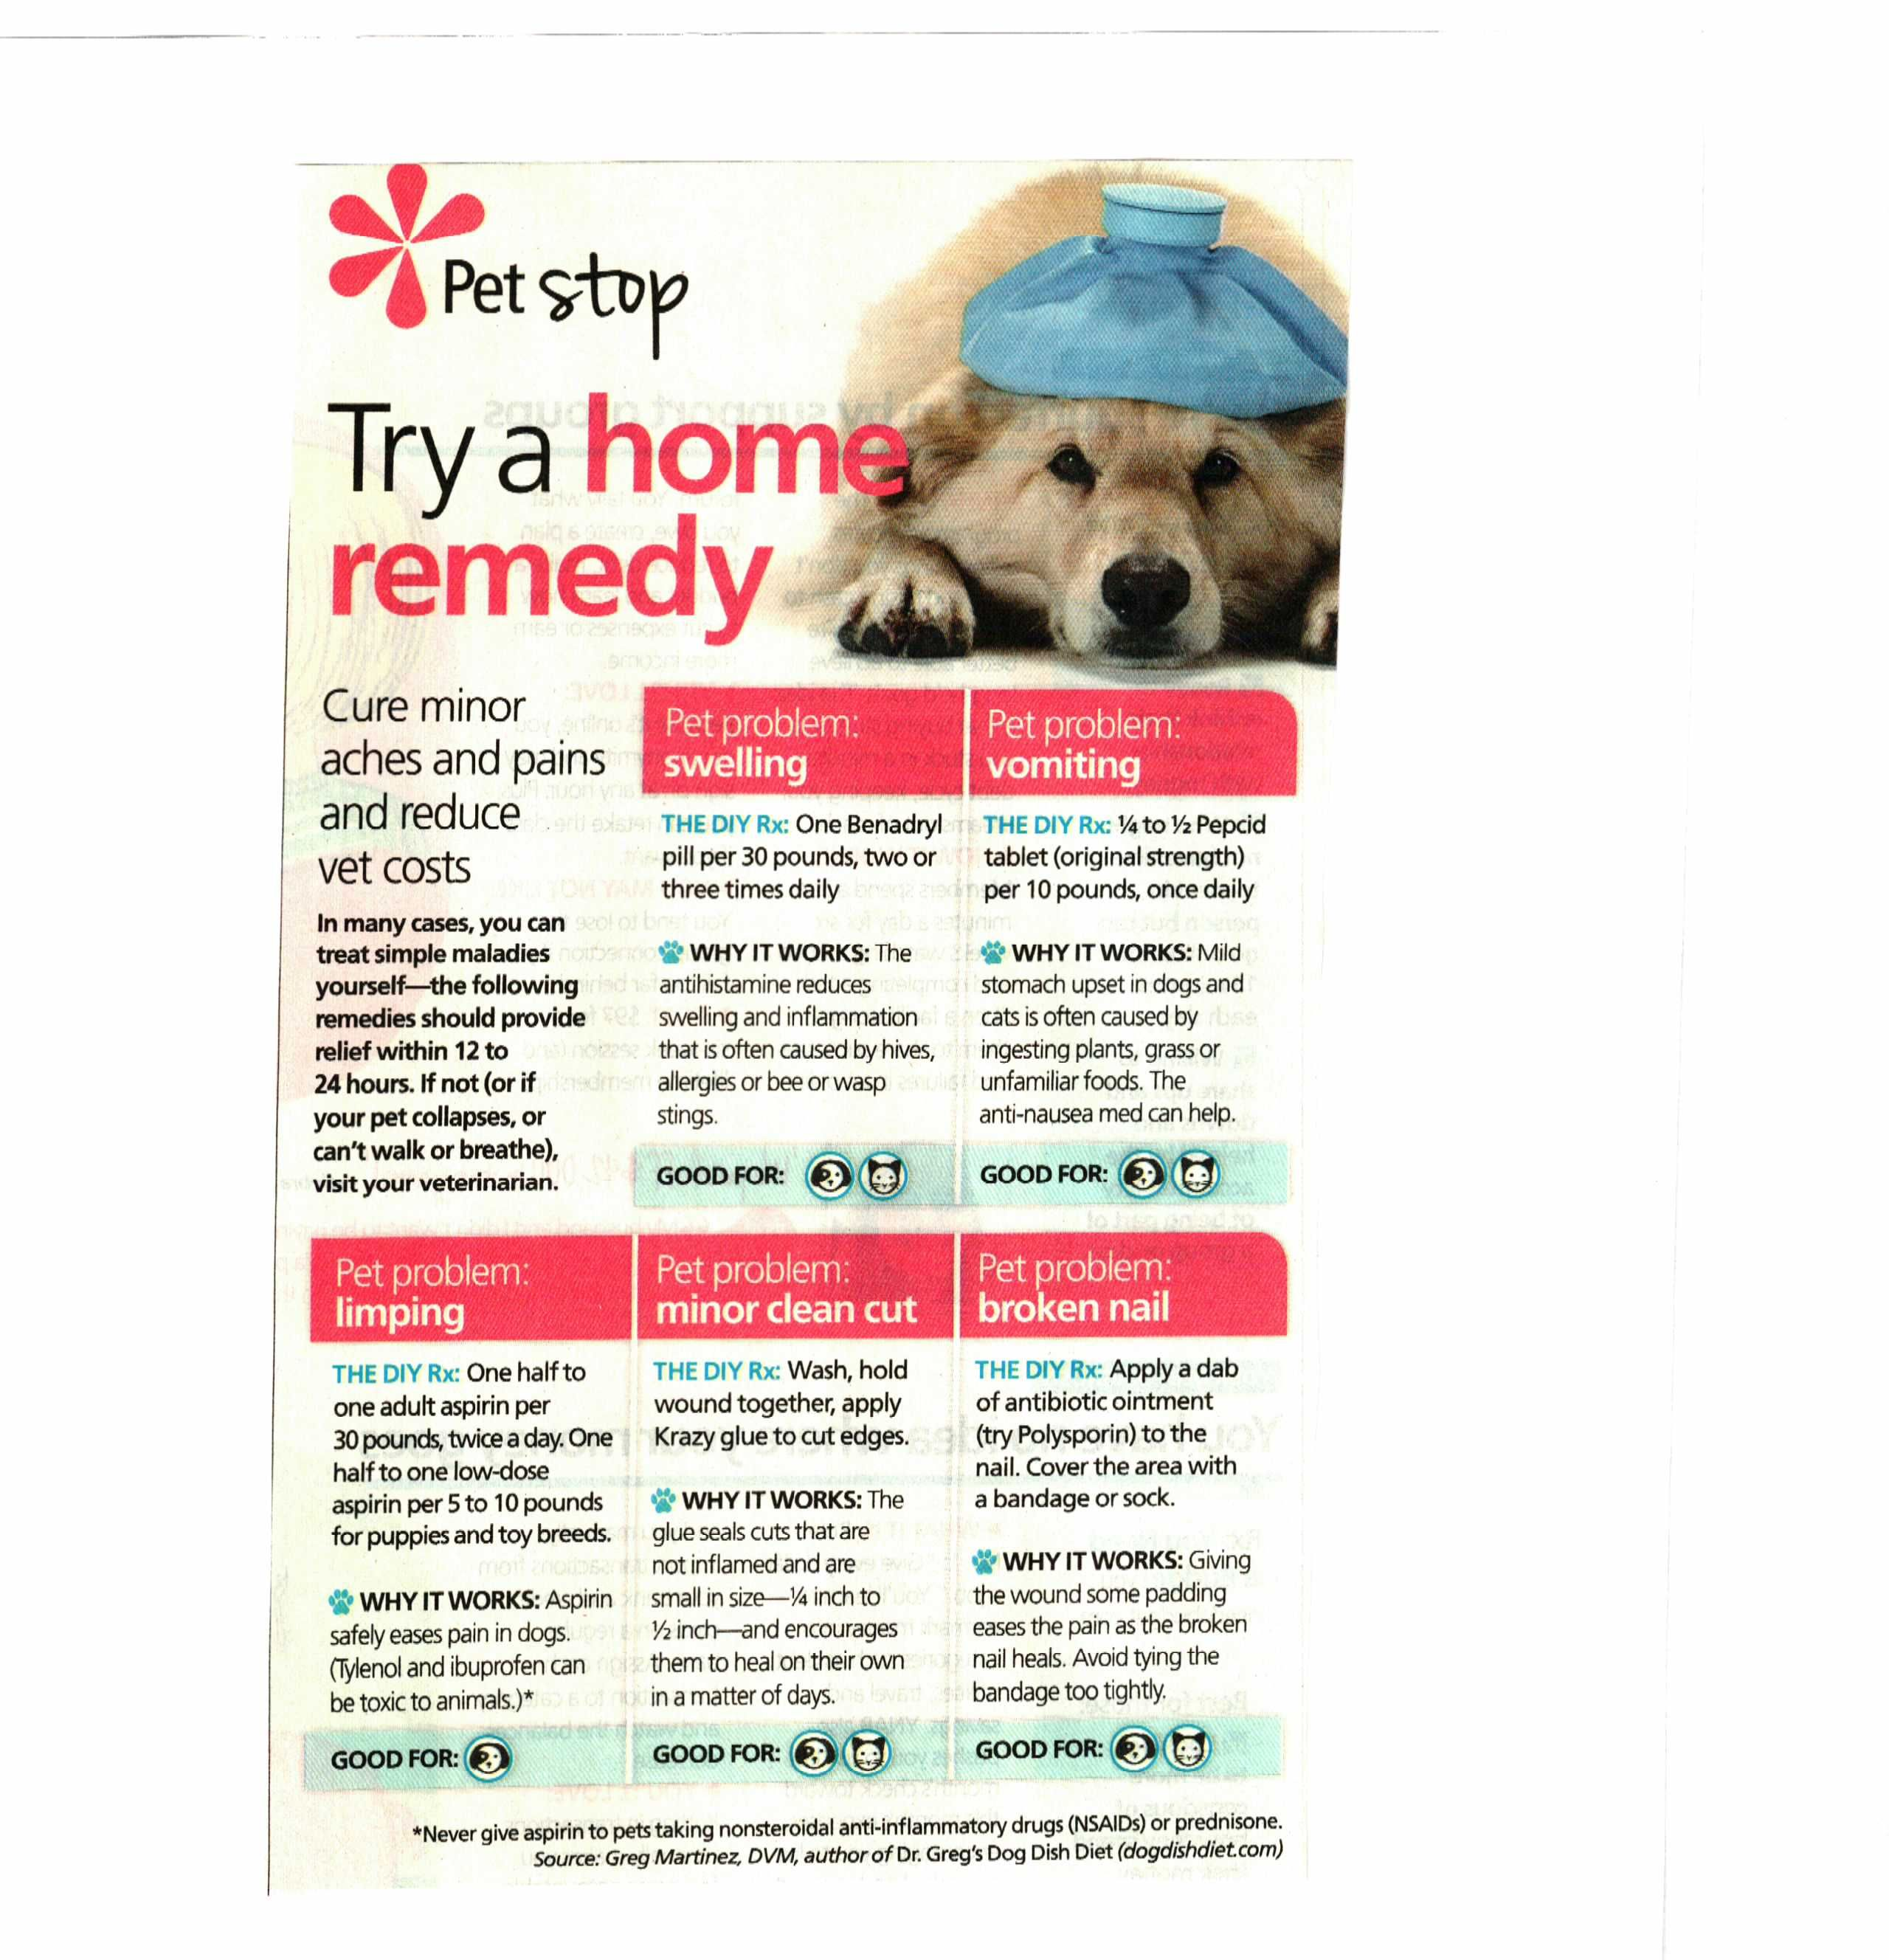 Home Remedies for Pets Home remedies, Vet costs, Remedies